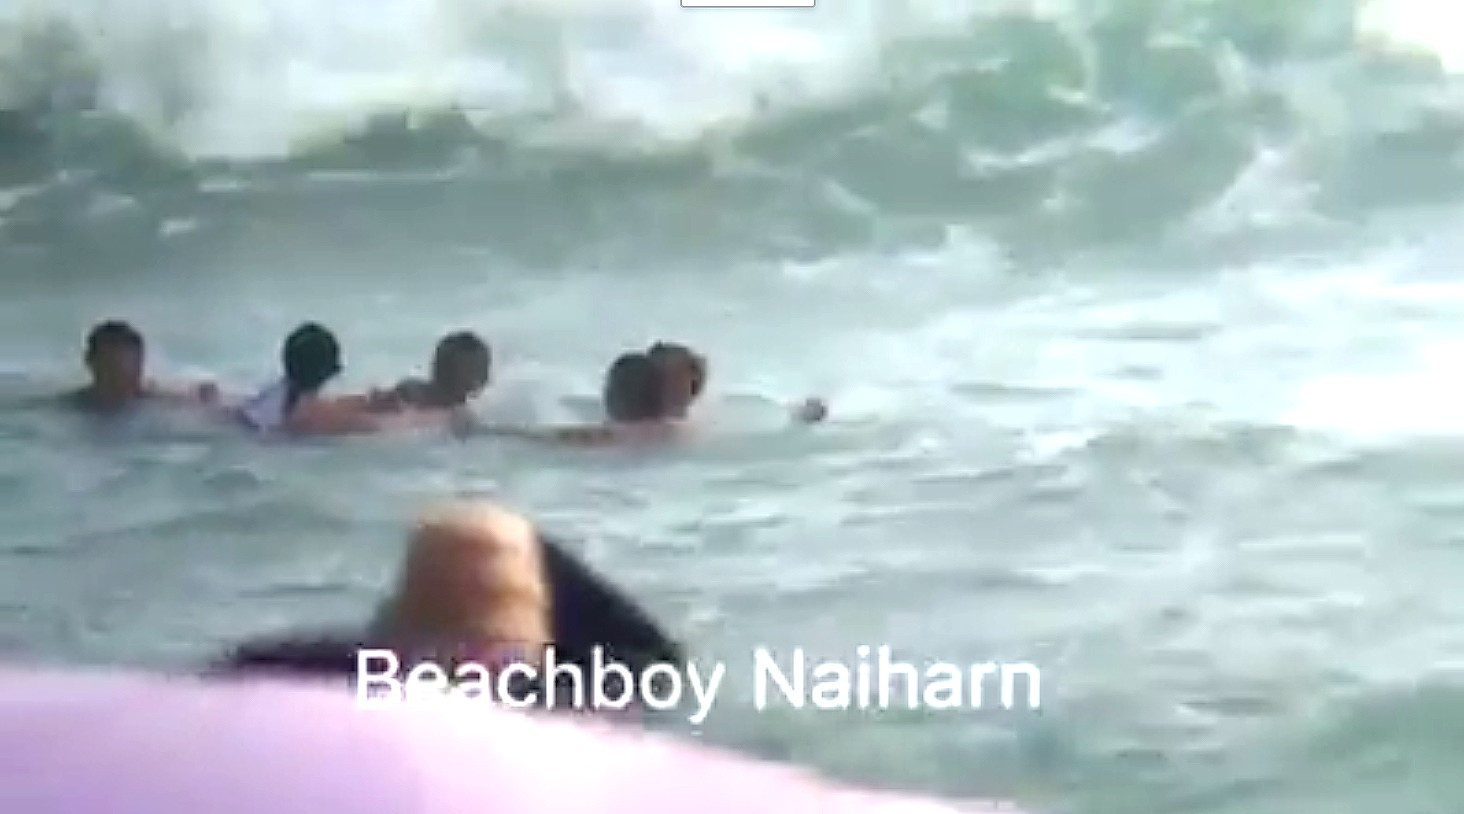 Chinese teenager rescued from Nai Harn surf | The Thaiger